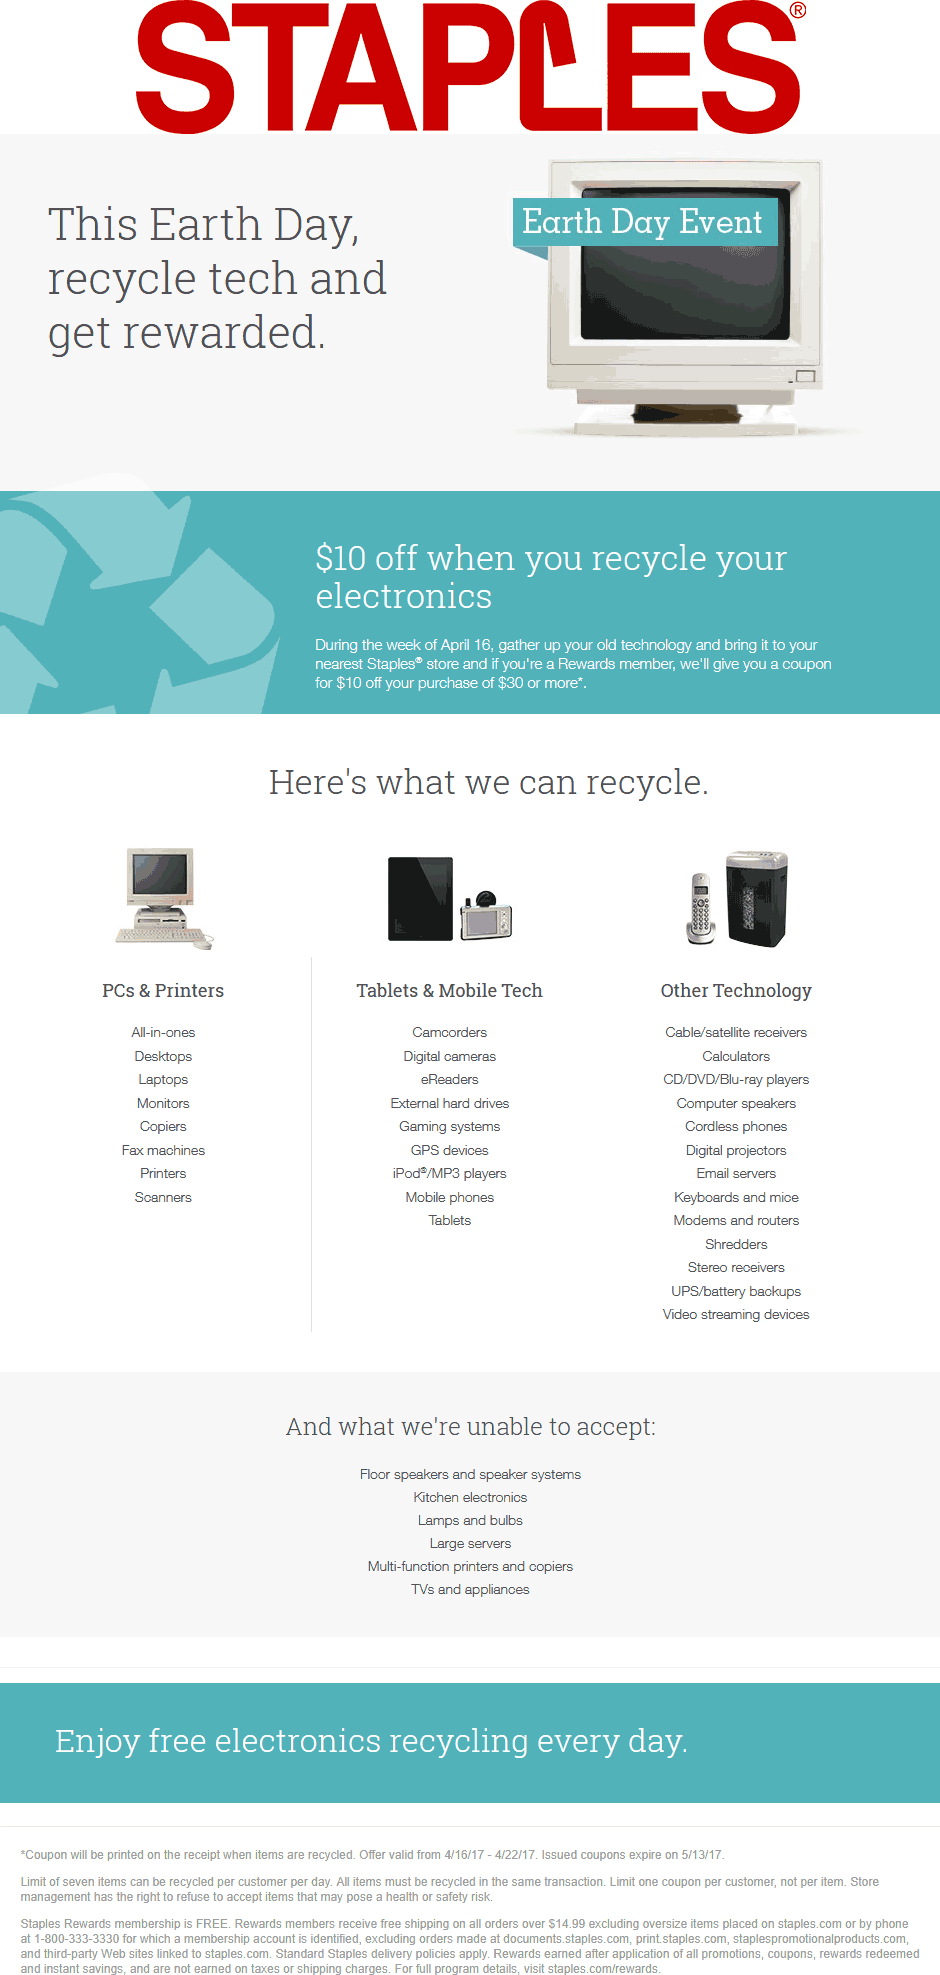 Staples Coupon September 2019 Bring in old electronics to recycle for a $10 off $30 coupon at Staples